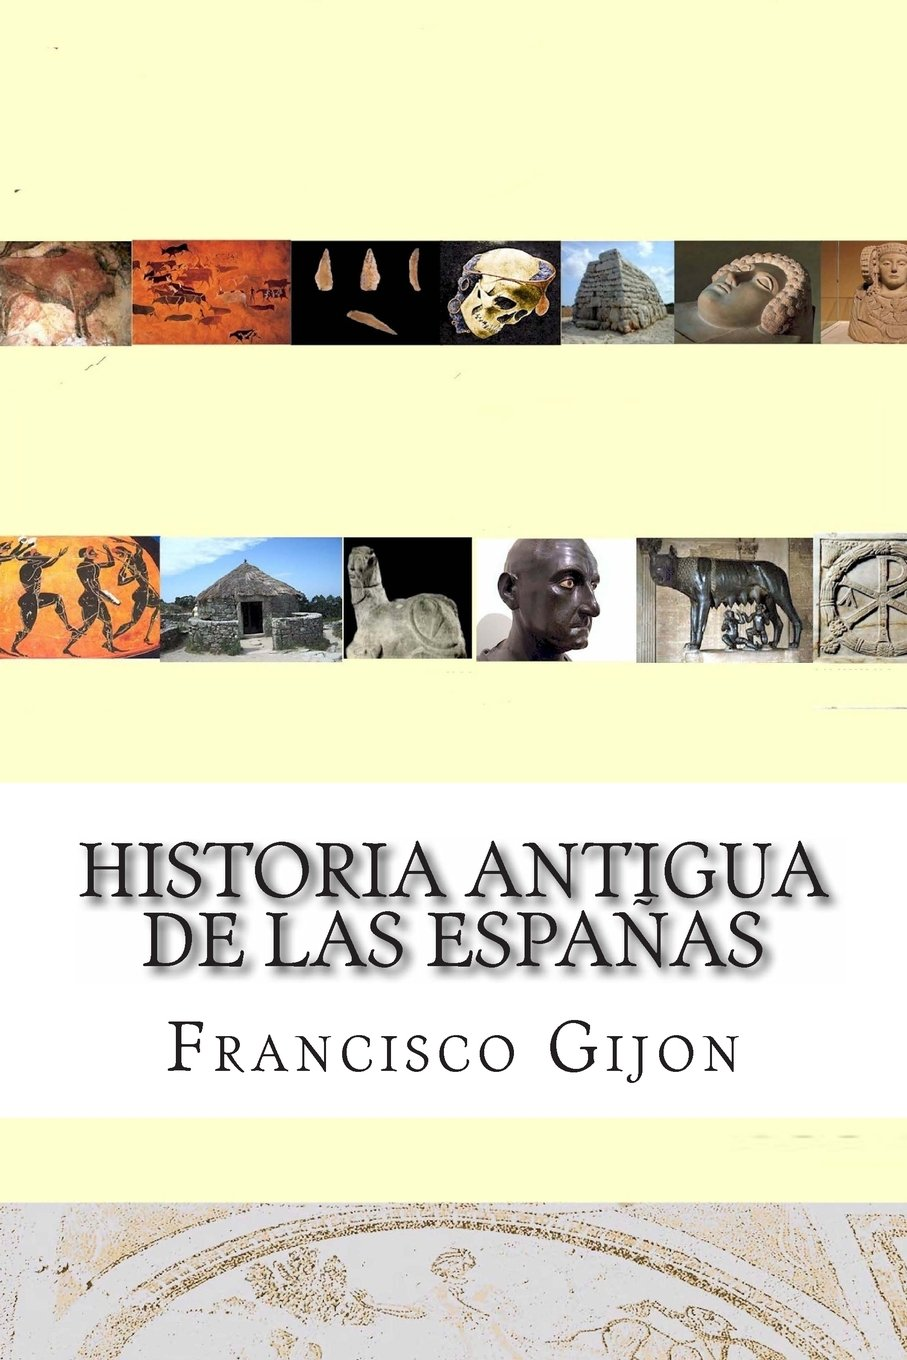 Historia Antigua de las Espanas (Historia Incompleta de las Espaas) (Spanish Edition): Francisco Gijon: 9781481950268: Amazon.com: Books